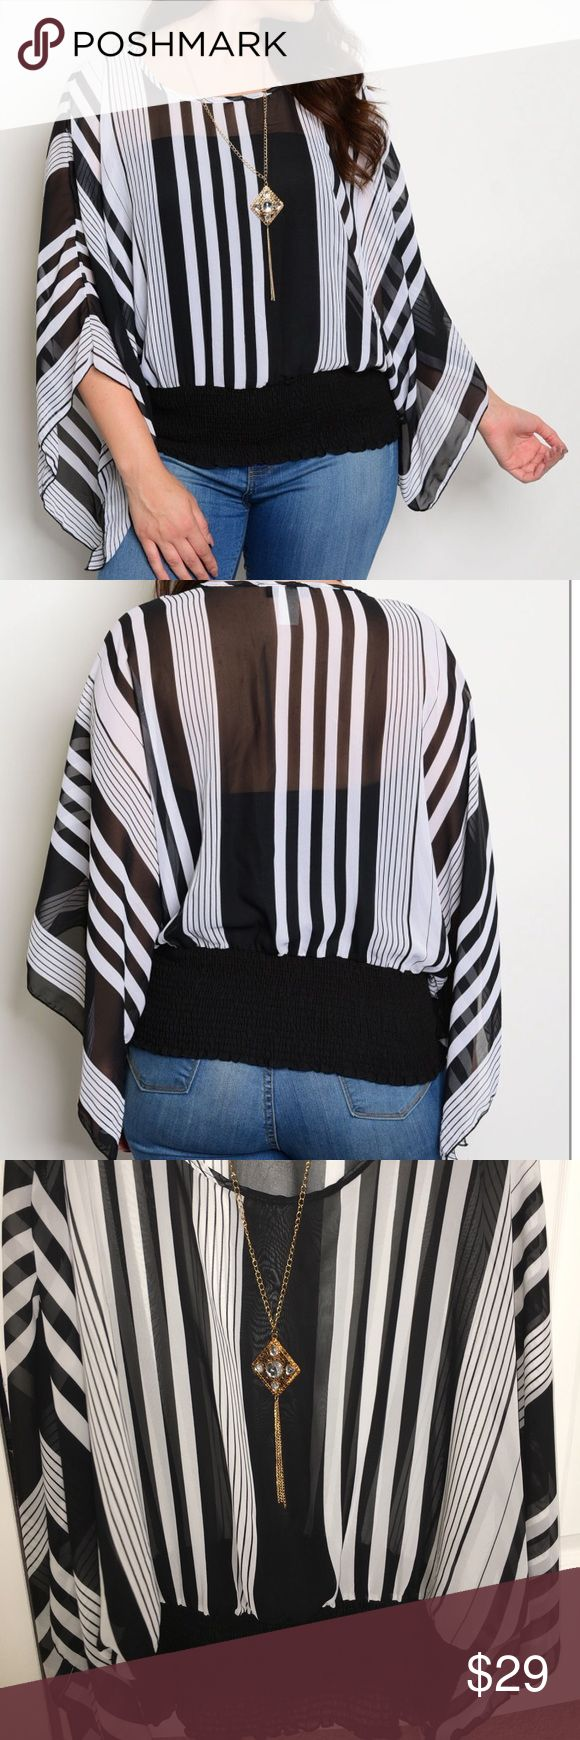 Sheer batwing top Black and white stripes. Round neckline. Detachable costume jewelry necklace. Colors may vary slightly to lighting and photos. No holes, rips or stains. Measurements approximately as shown. ❌Smoke and pet free home. ⚡️Same/next day shipping. 💲Save by bundling or make a reasonable offer through the offer button. 🚫No trades or modeling. 📦Wrapped and shipped with care. 🎁Includes free gift. Tops Blouses